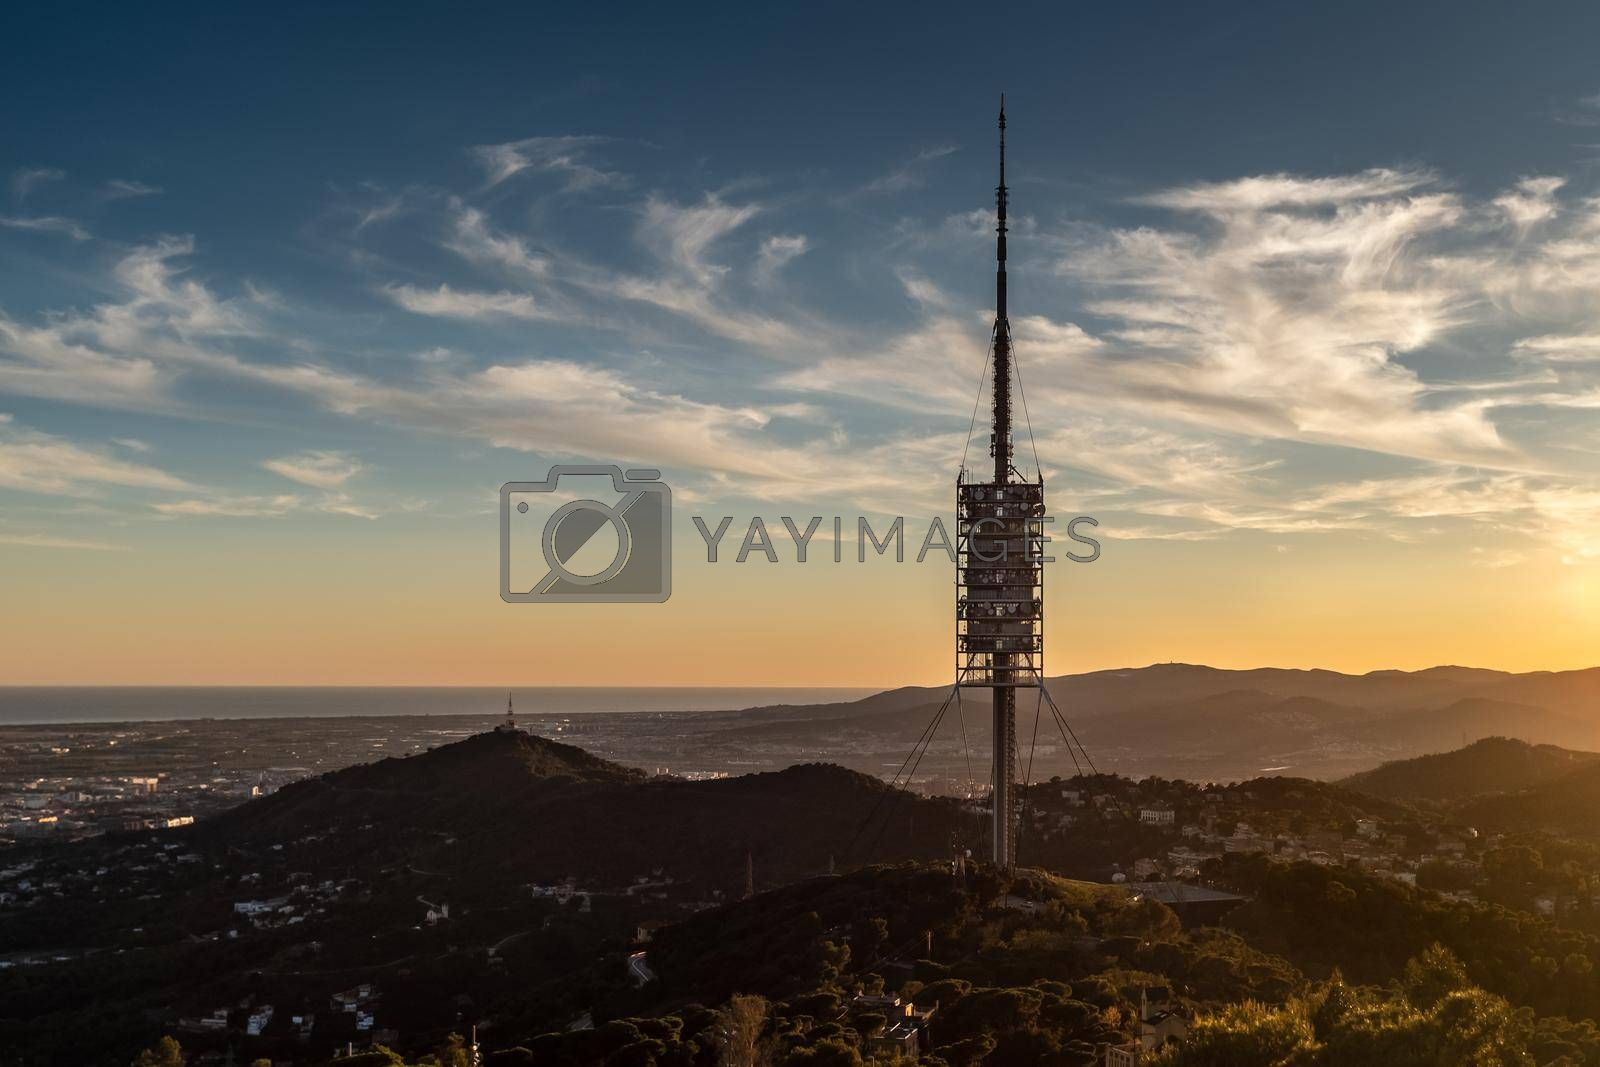 Torre de Collserola (Collserola Tower), designed in 1992 by the English architect Norman Foster. Inaugurated on the occasion of the Olympic Games in Barcelona '92, is the main telecommunications tower in Catalonia, Spain.